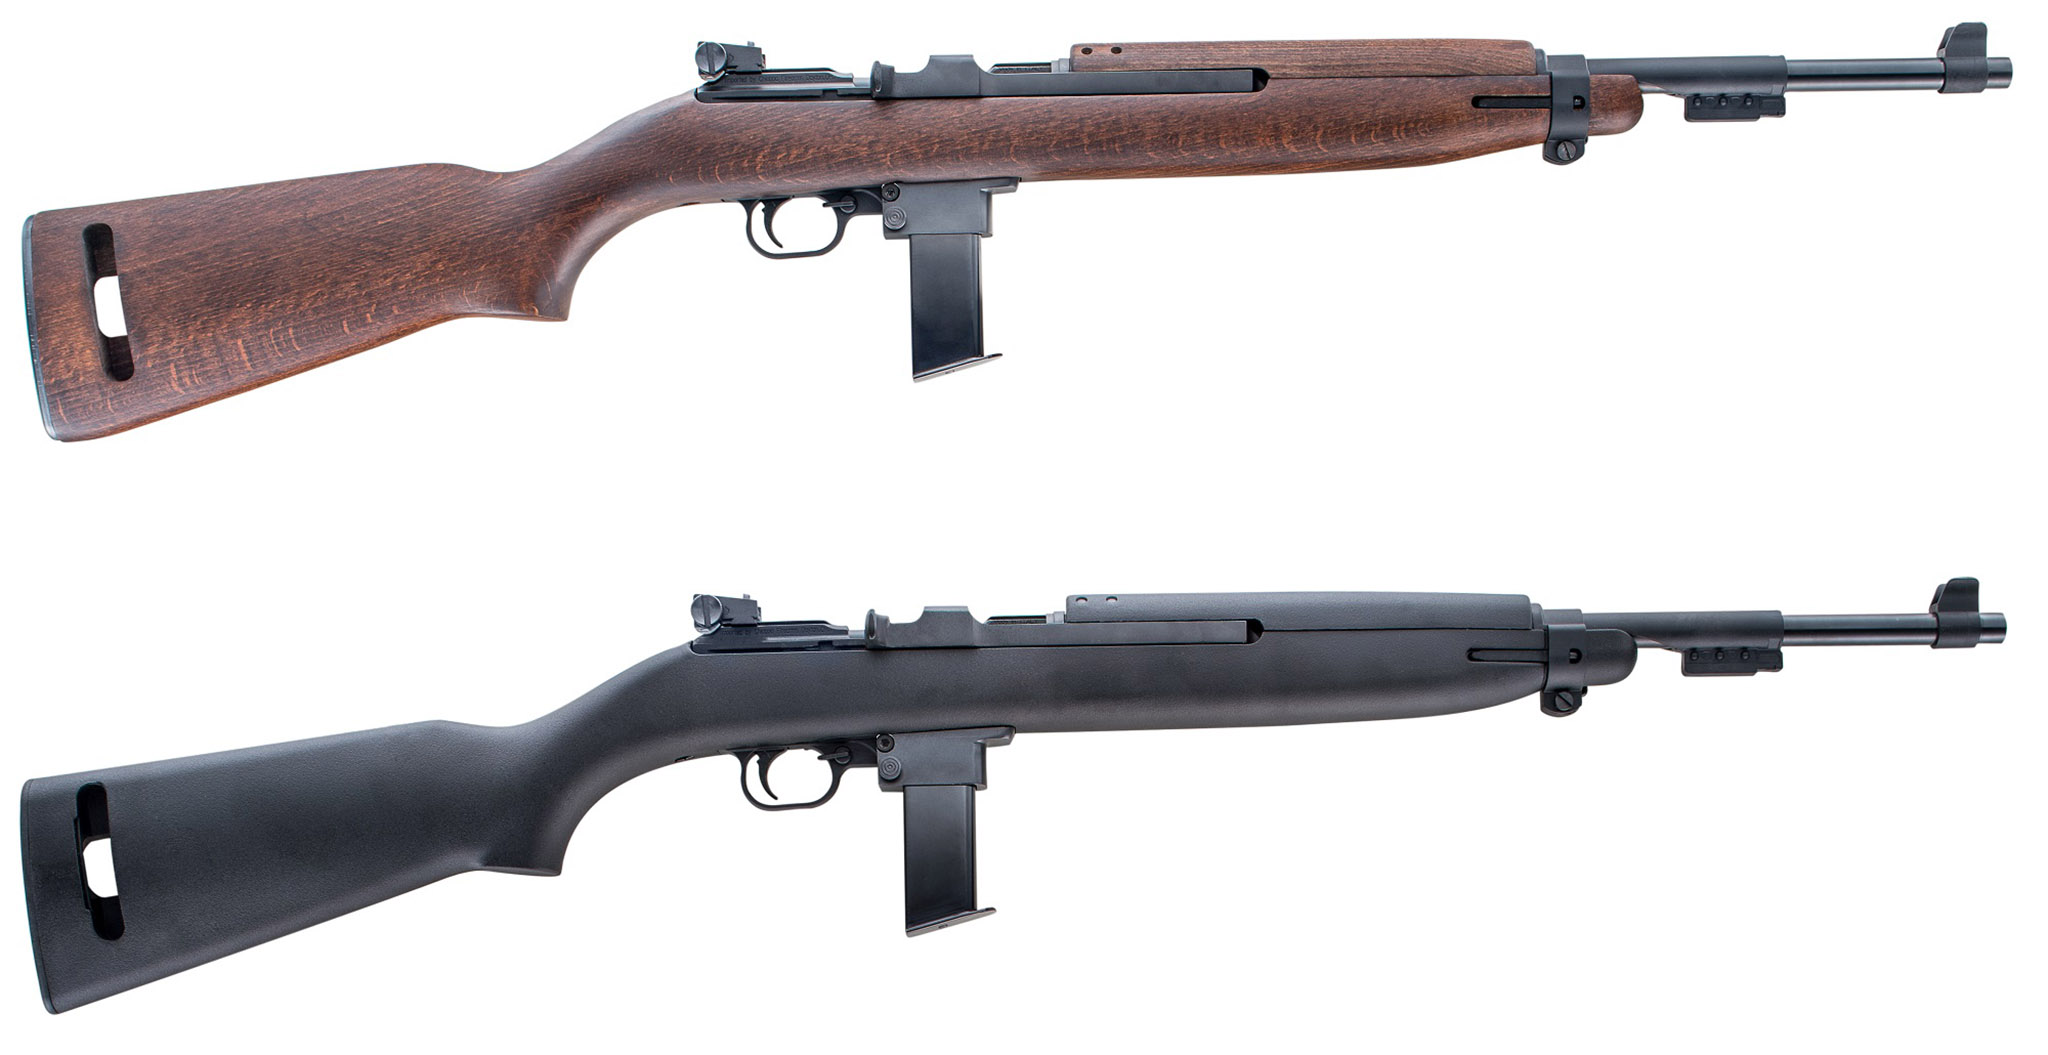 Chiappa Firearms M1-9mm carbine, finally in production and available! - Rifles - all4shooters.com